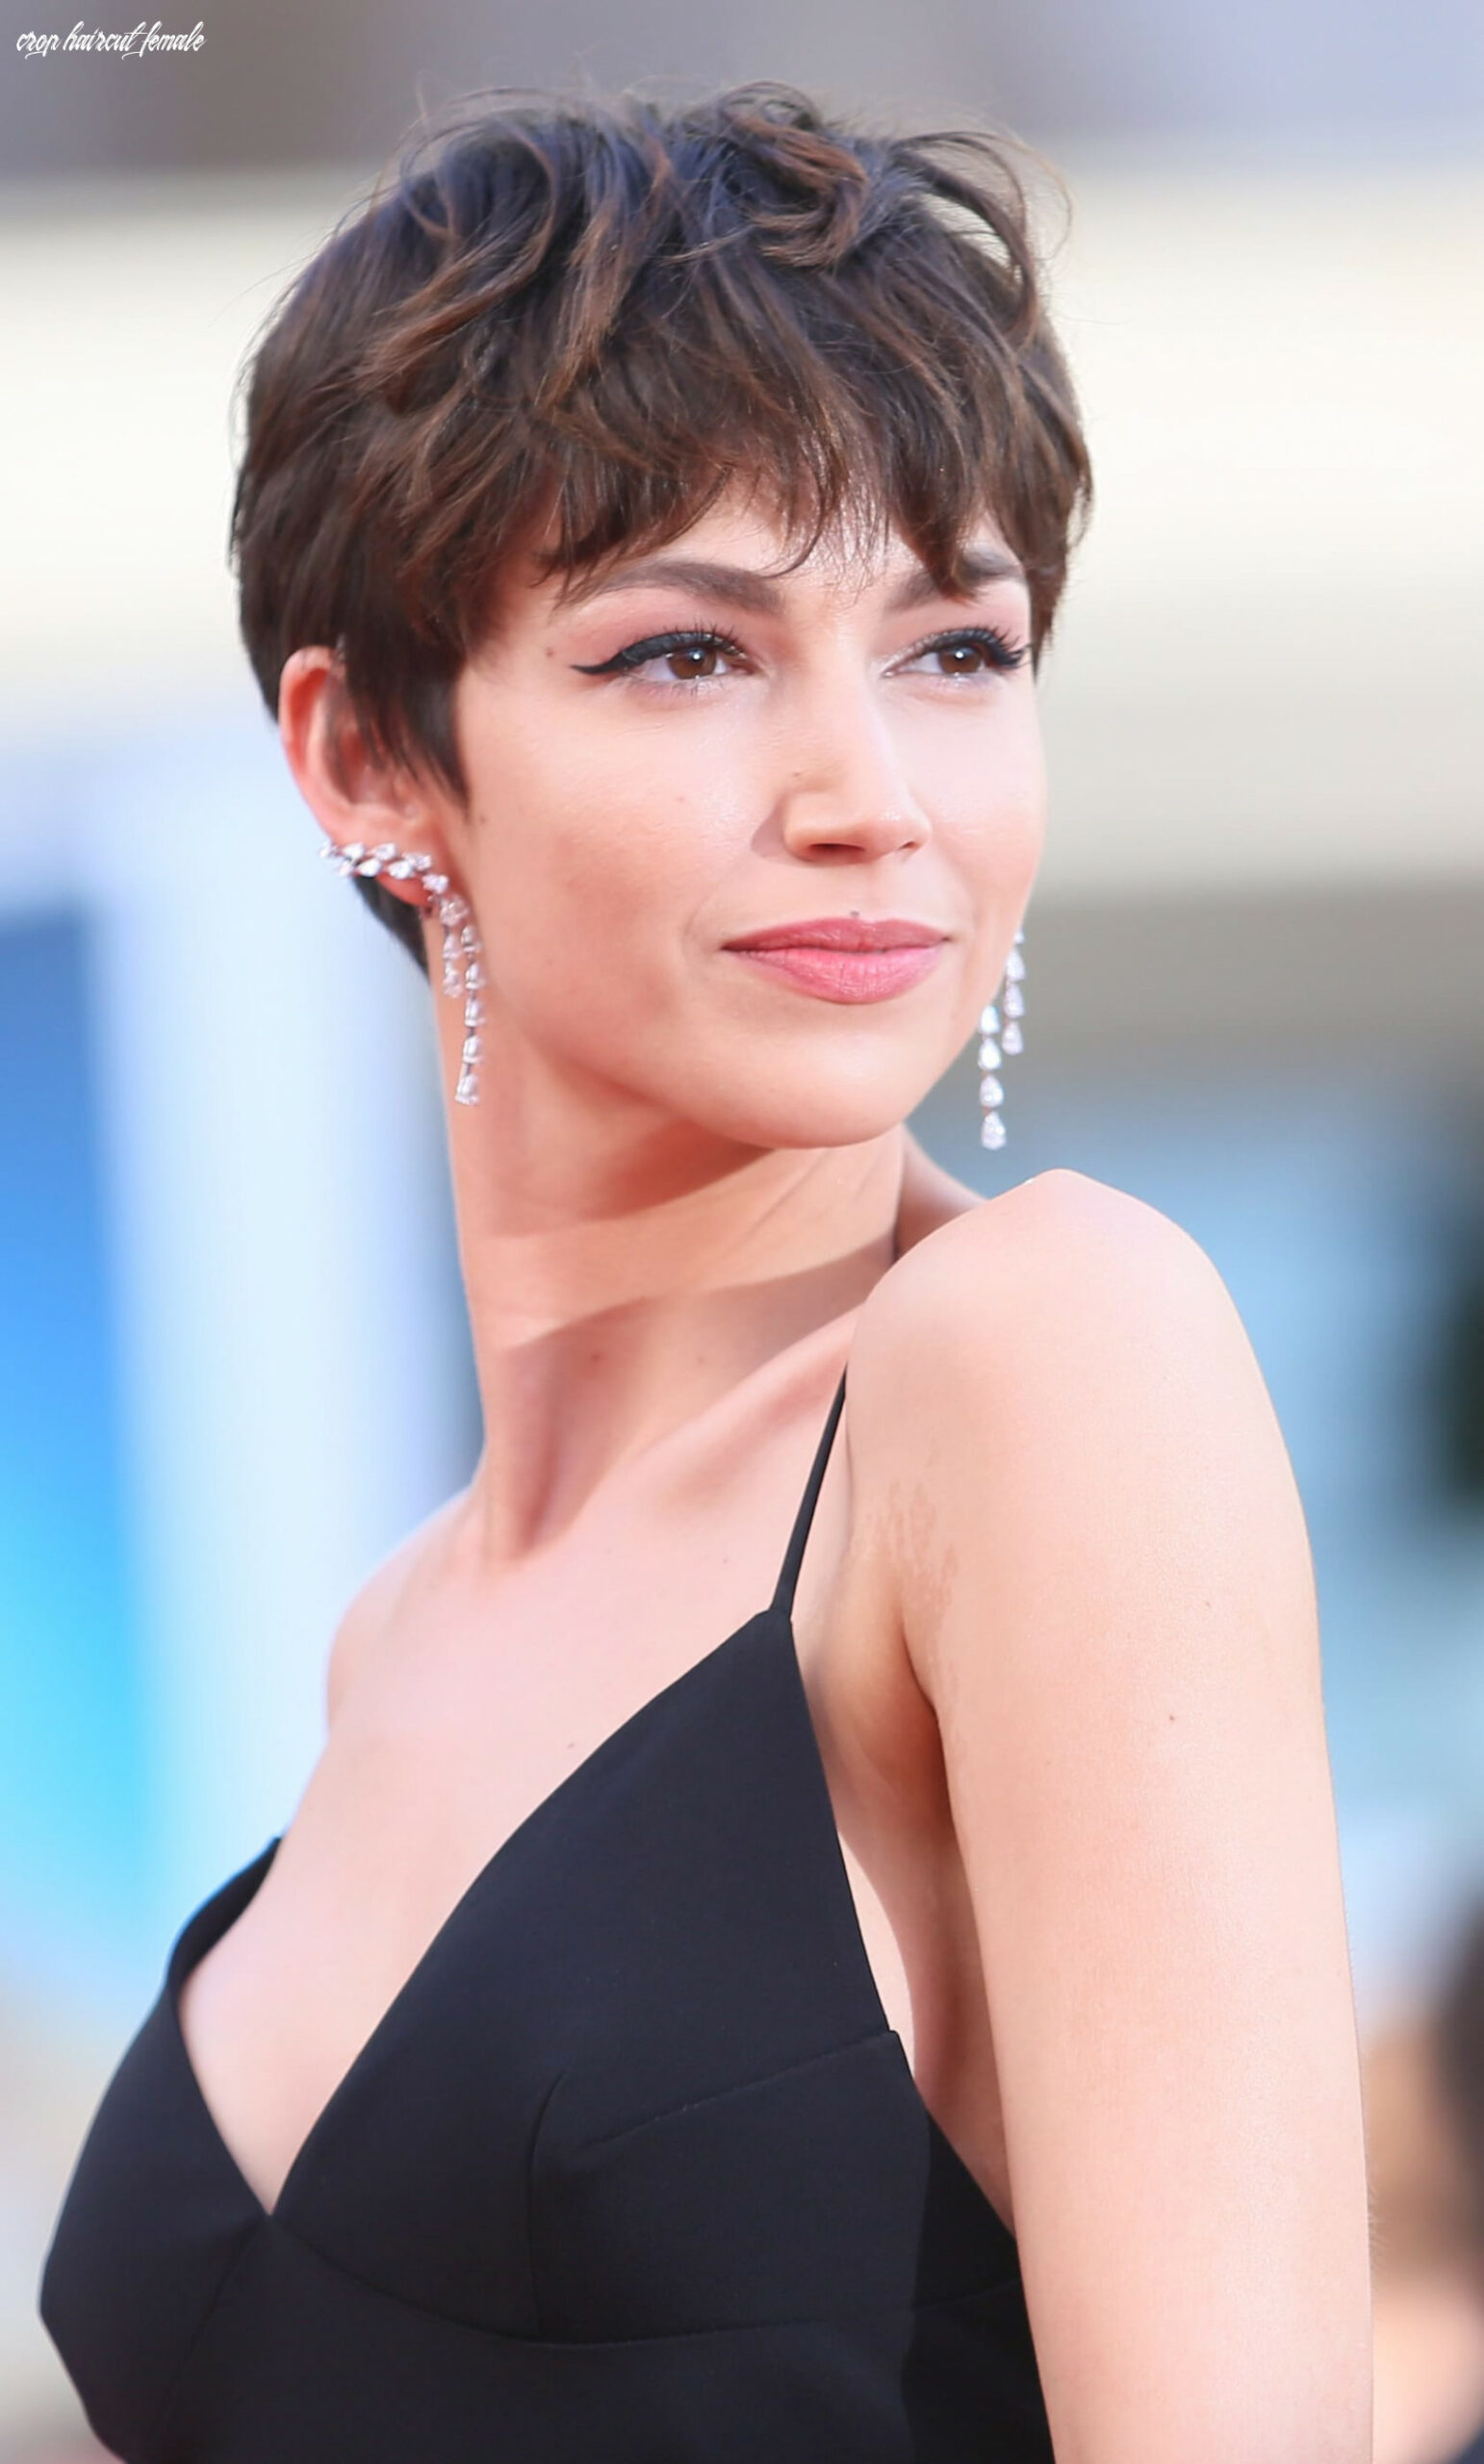 11 latest short hairstyles for women for 11 crop haircut female